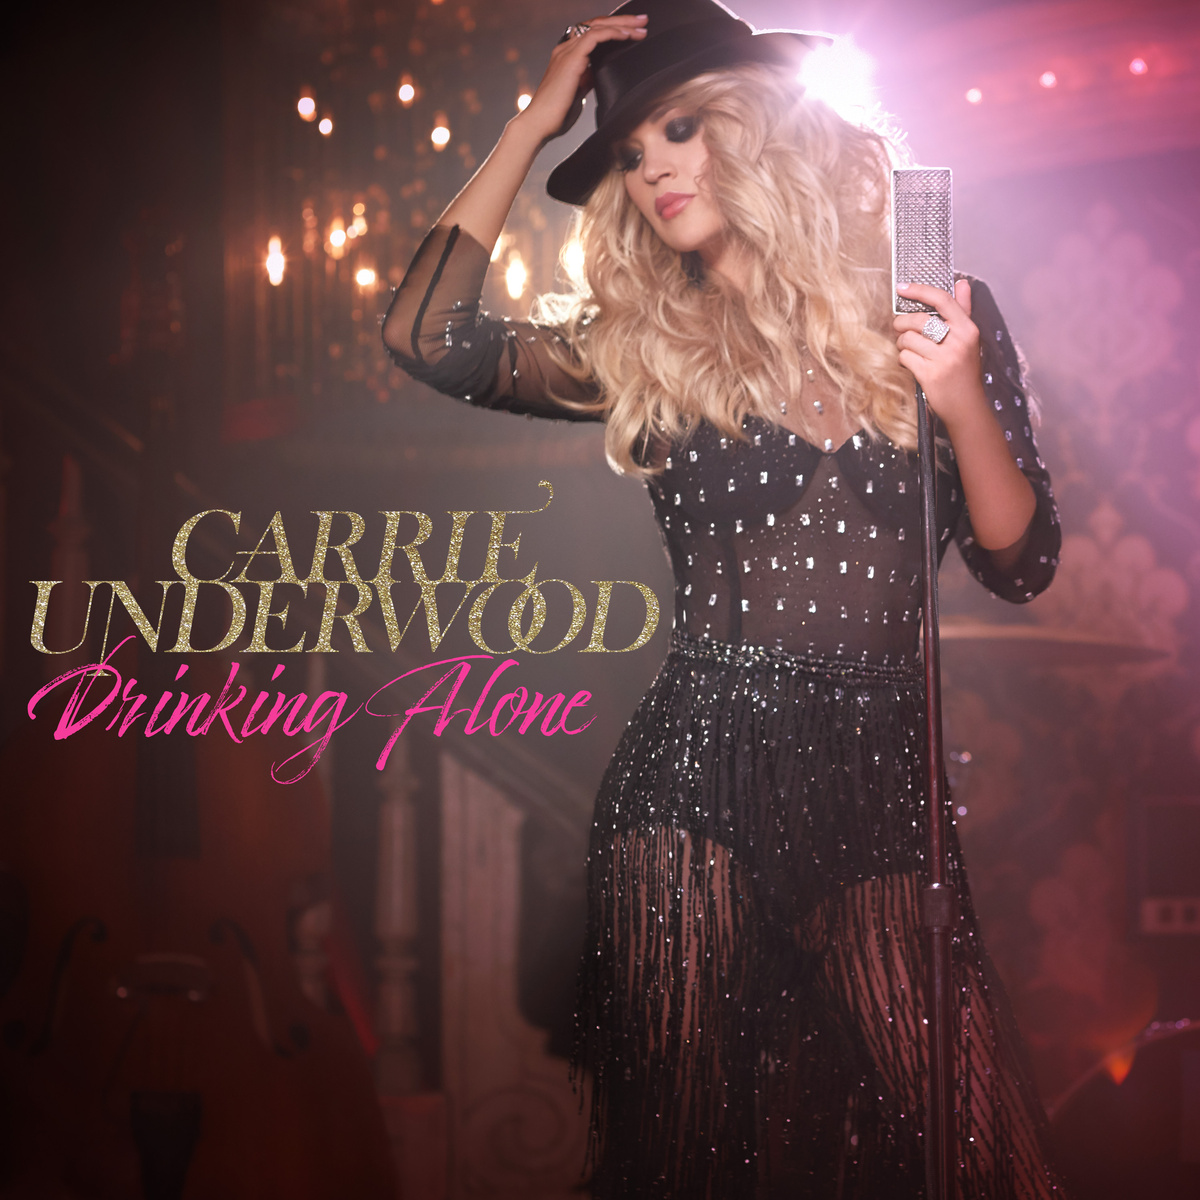 carrie-underwood-drinking